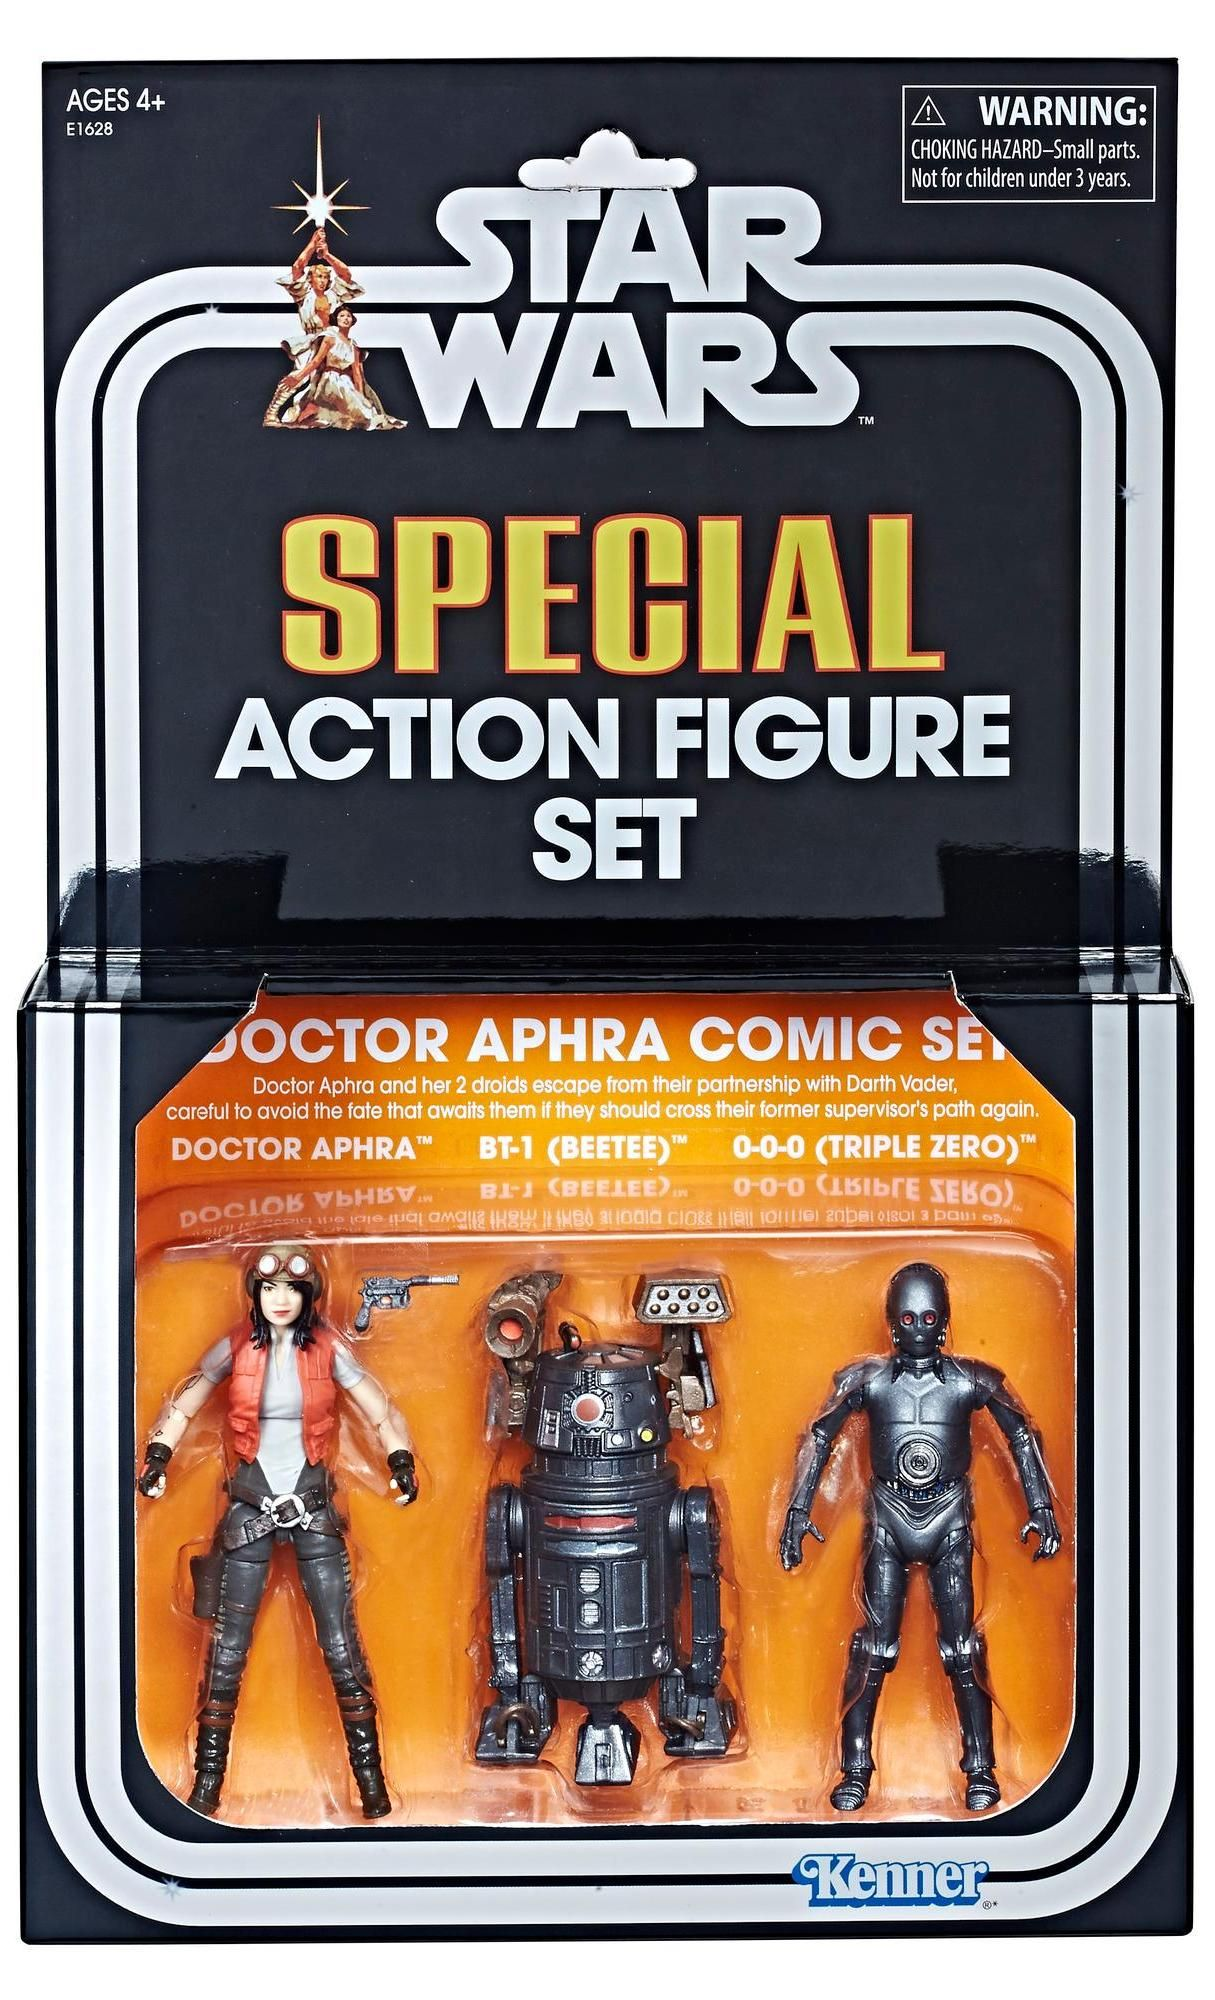 Dr Aphra 0 0 0 Bt 1 Sdcc 2018 Exclusive Star Wars Awesome Star Wars Collection Star Wars Figures